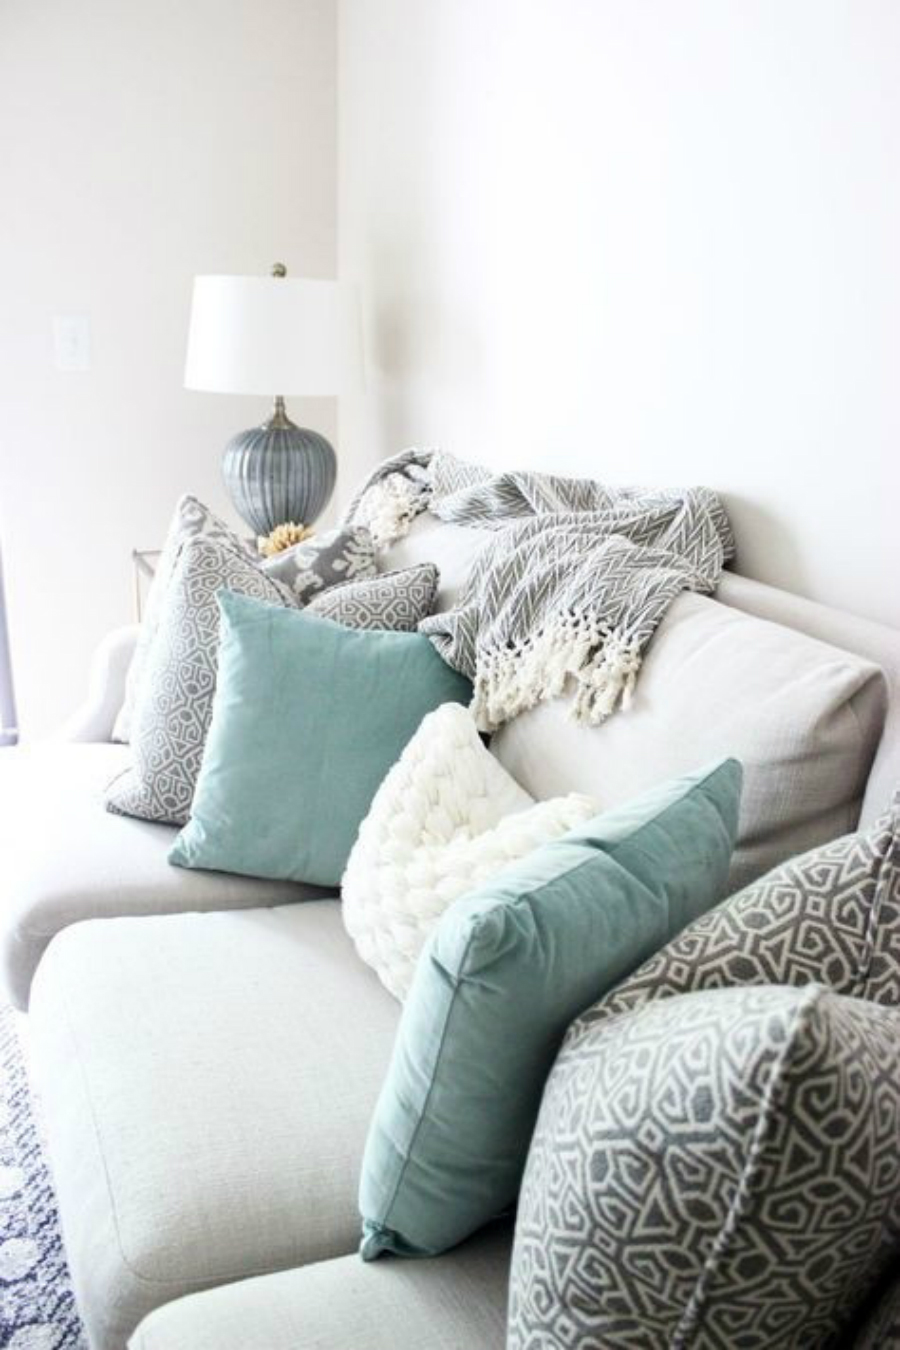 Upholstery Fabrics Inspiration: How to Style with Pillows upholstery fabrics inspiration Upholstery Fabrics Inspiration: How to Style with Decorative Pillows Upholstery Fabrics Inspiration How to Style with Decorative Pillows10